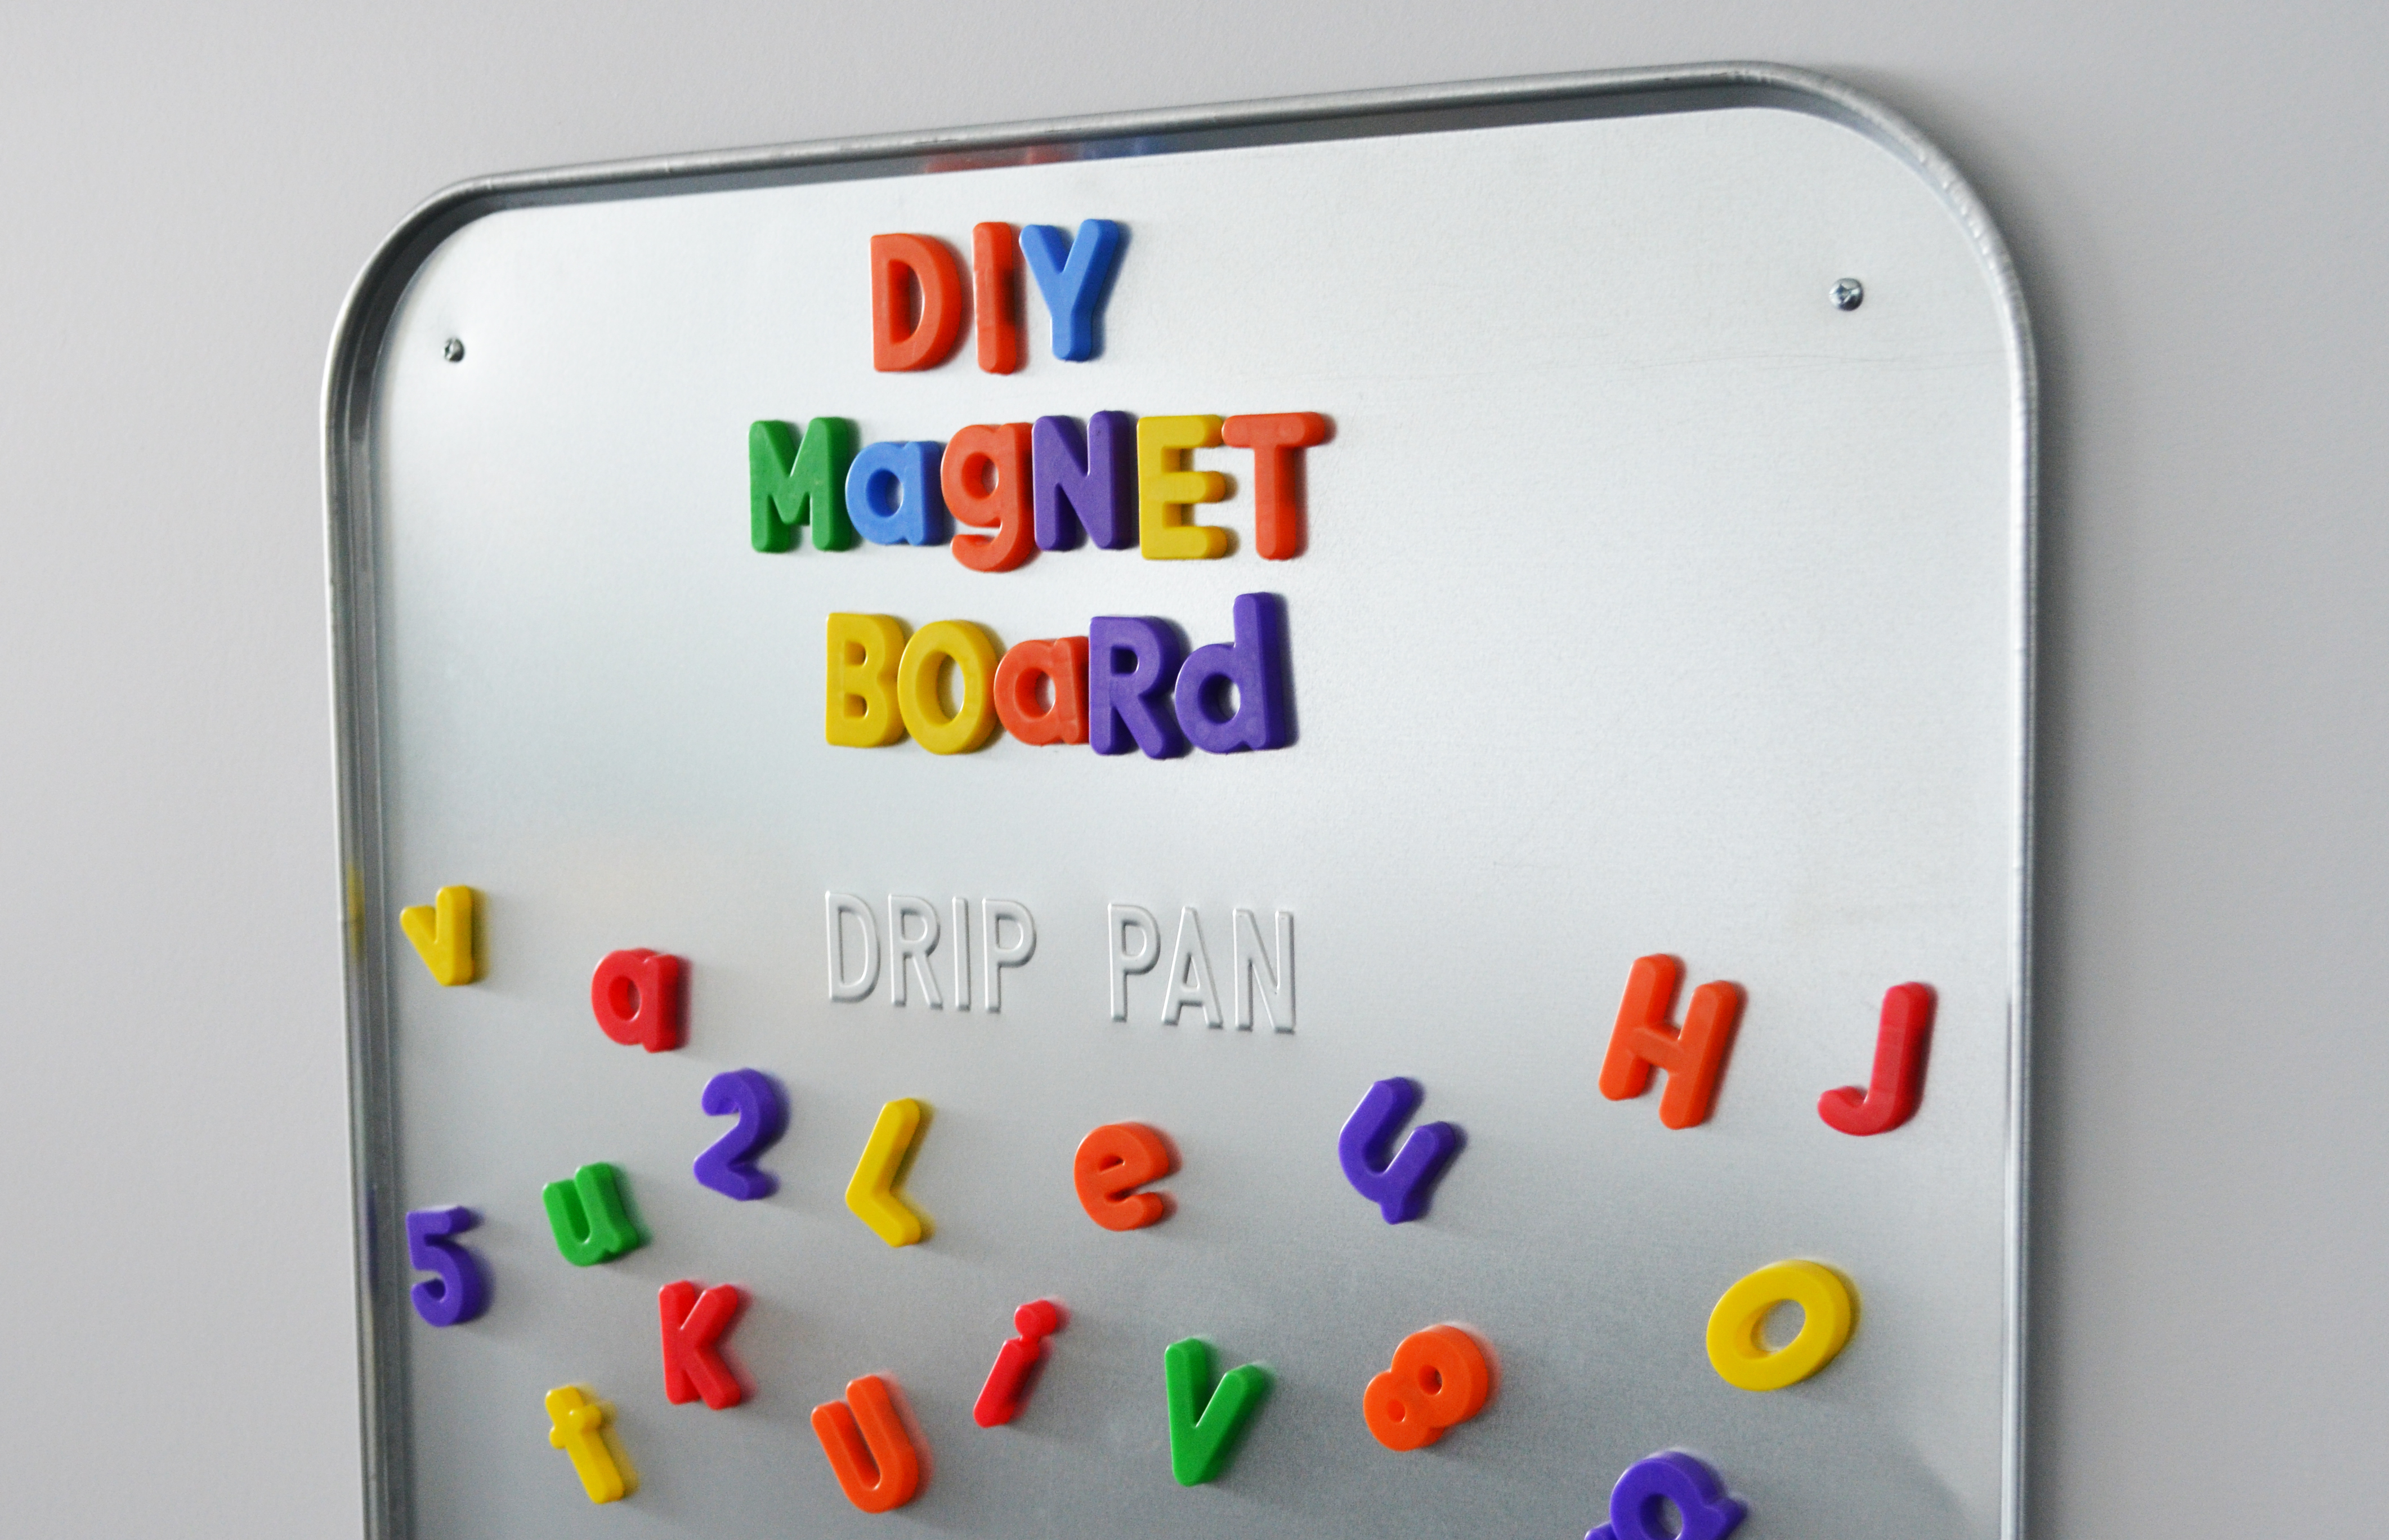 Diy Magnet Board Whisking Mama